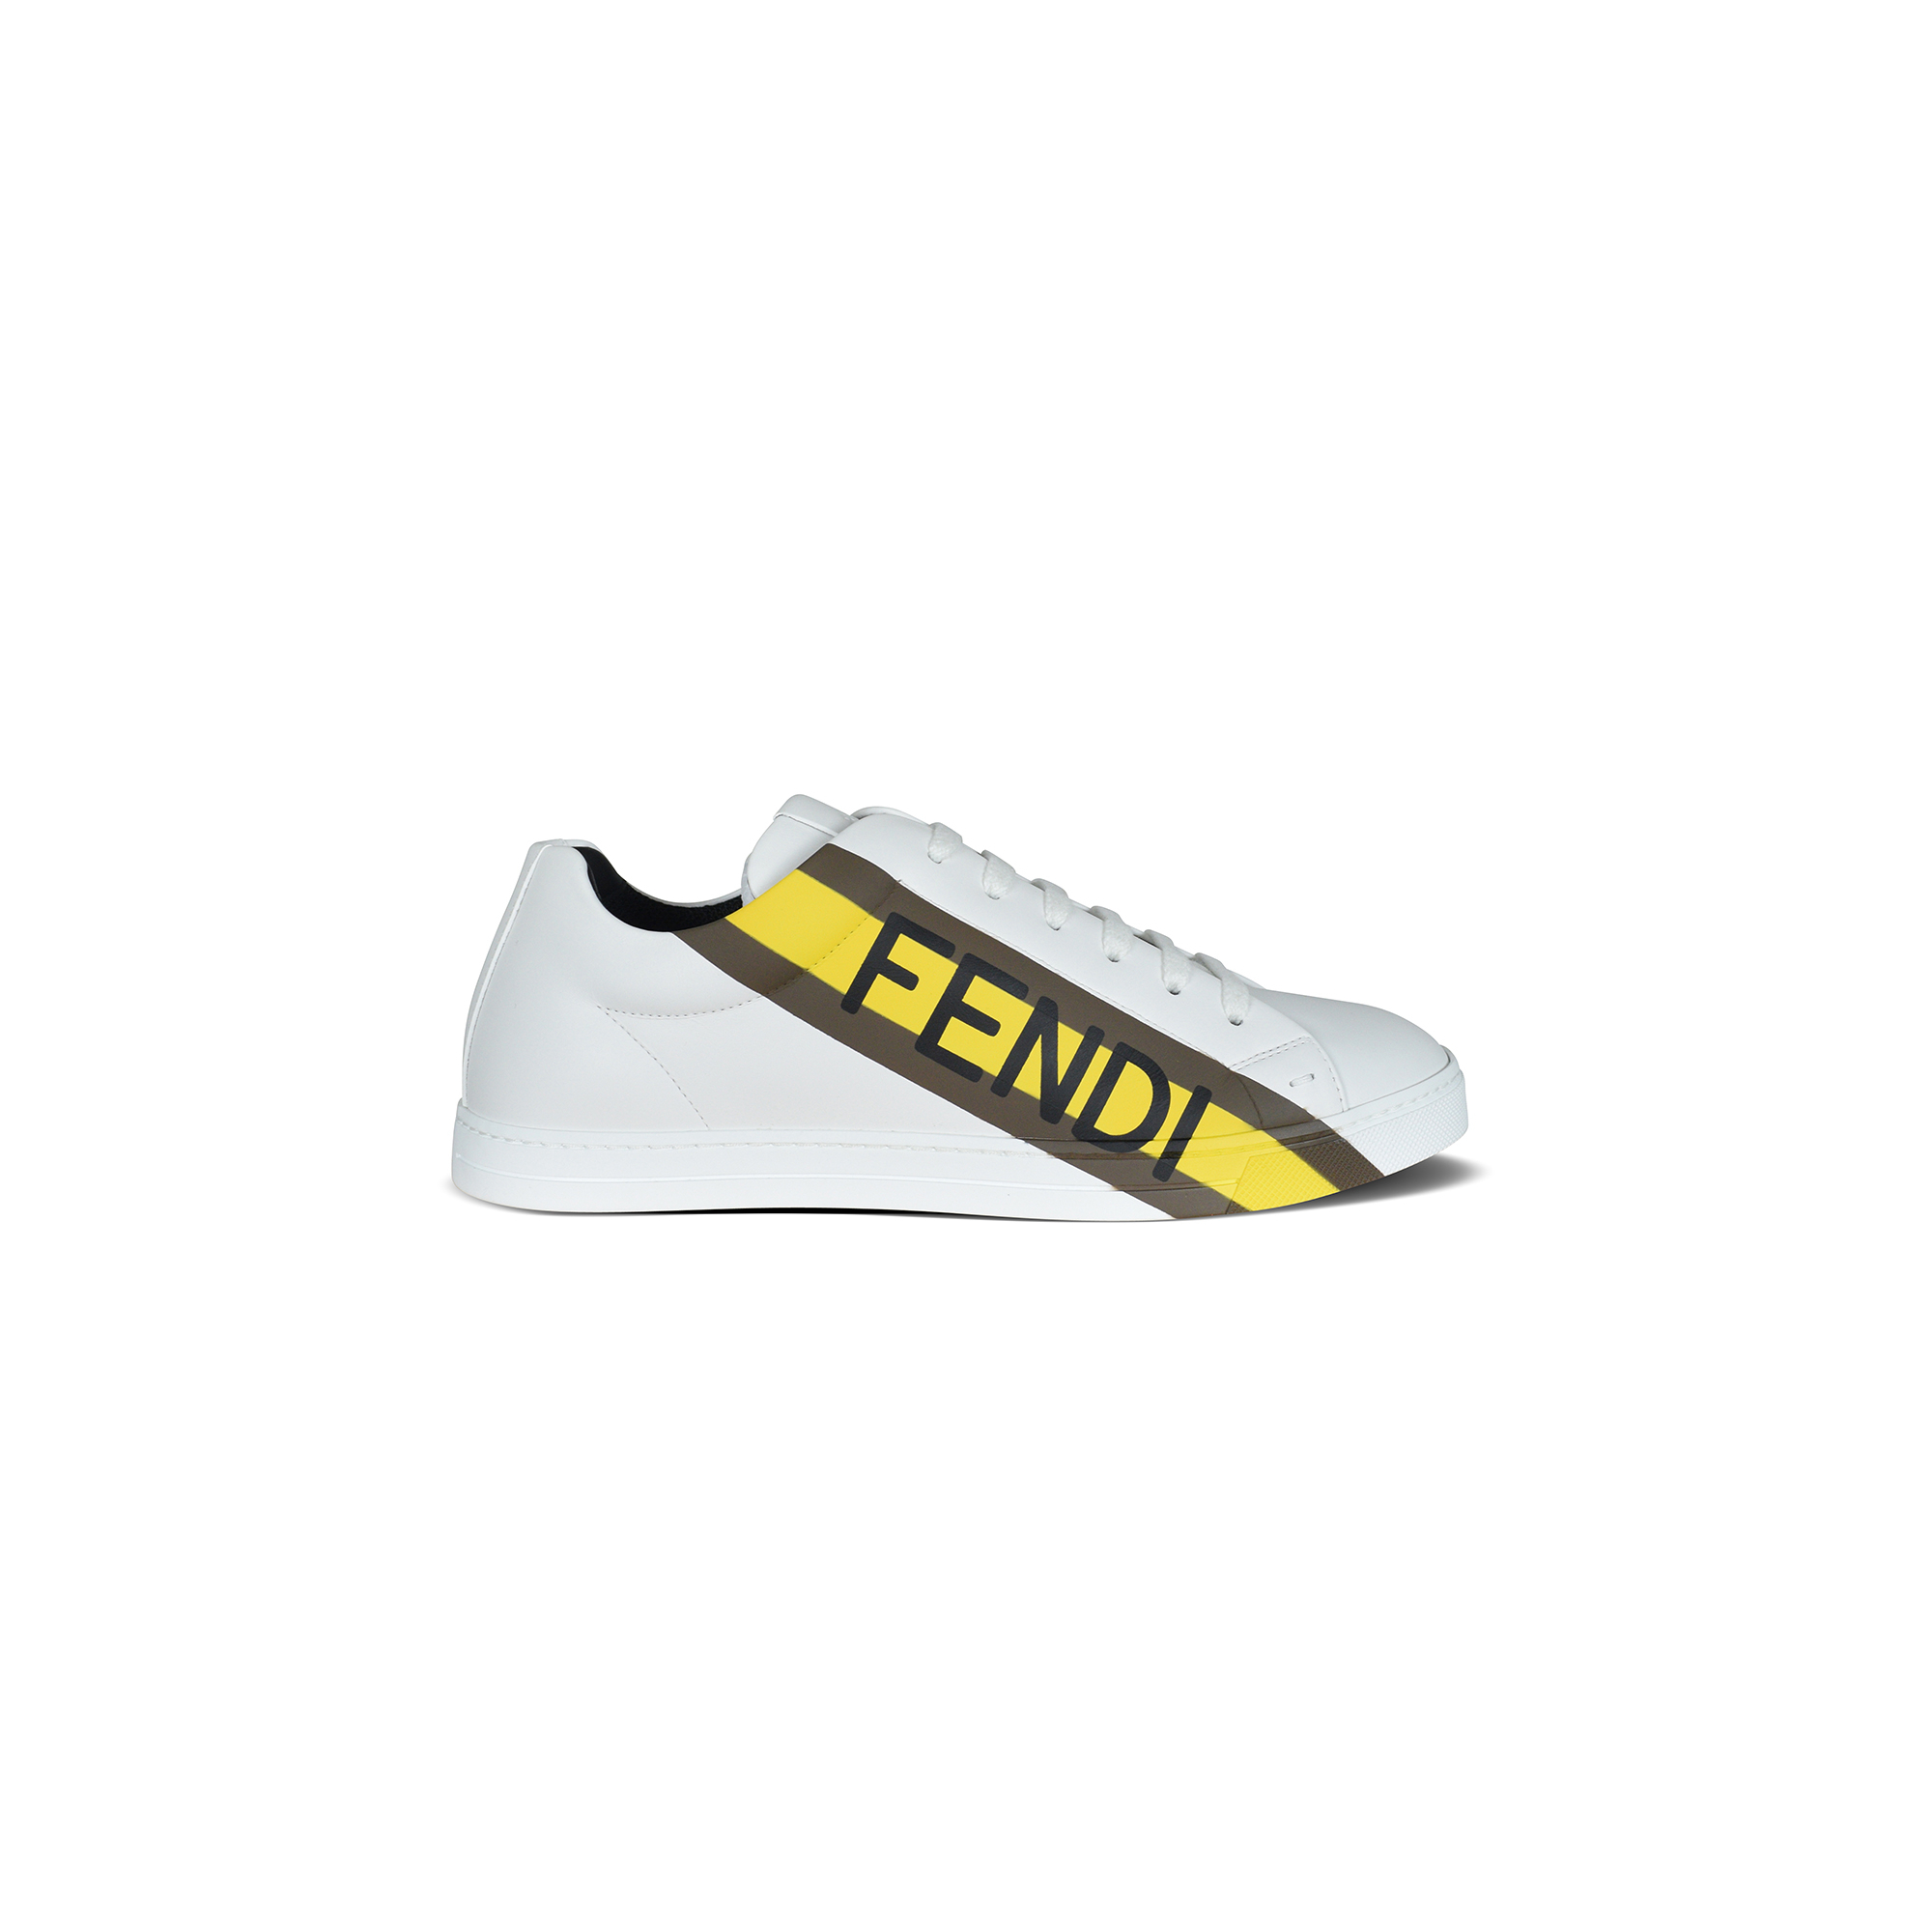 Fendi sneakers in white leather.